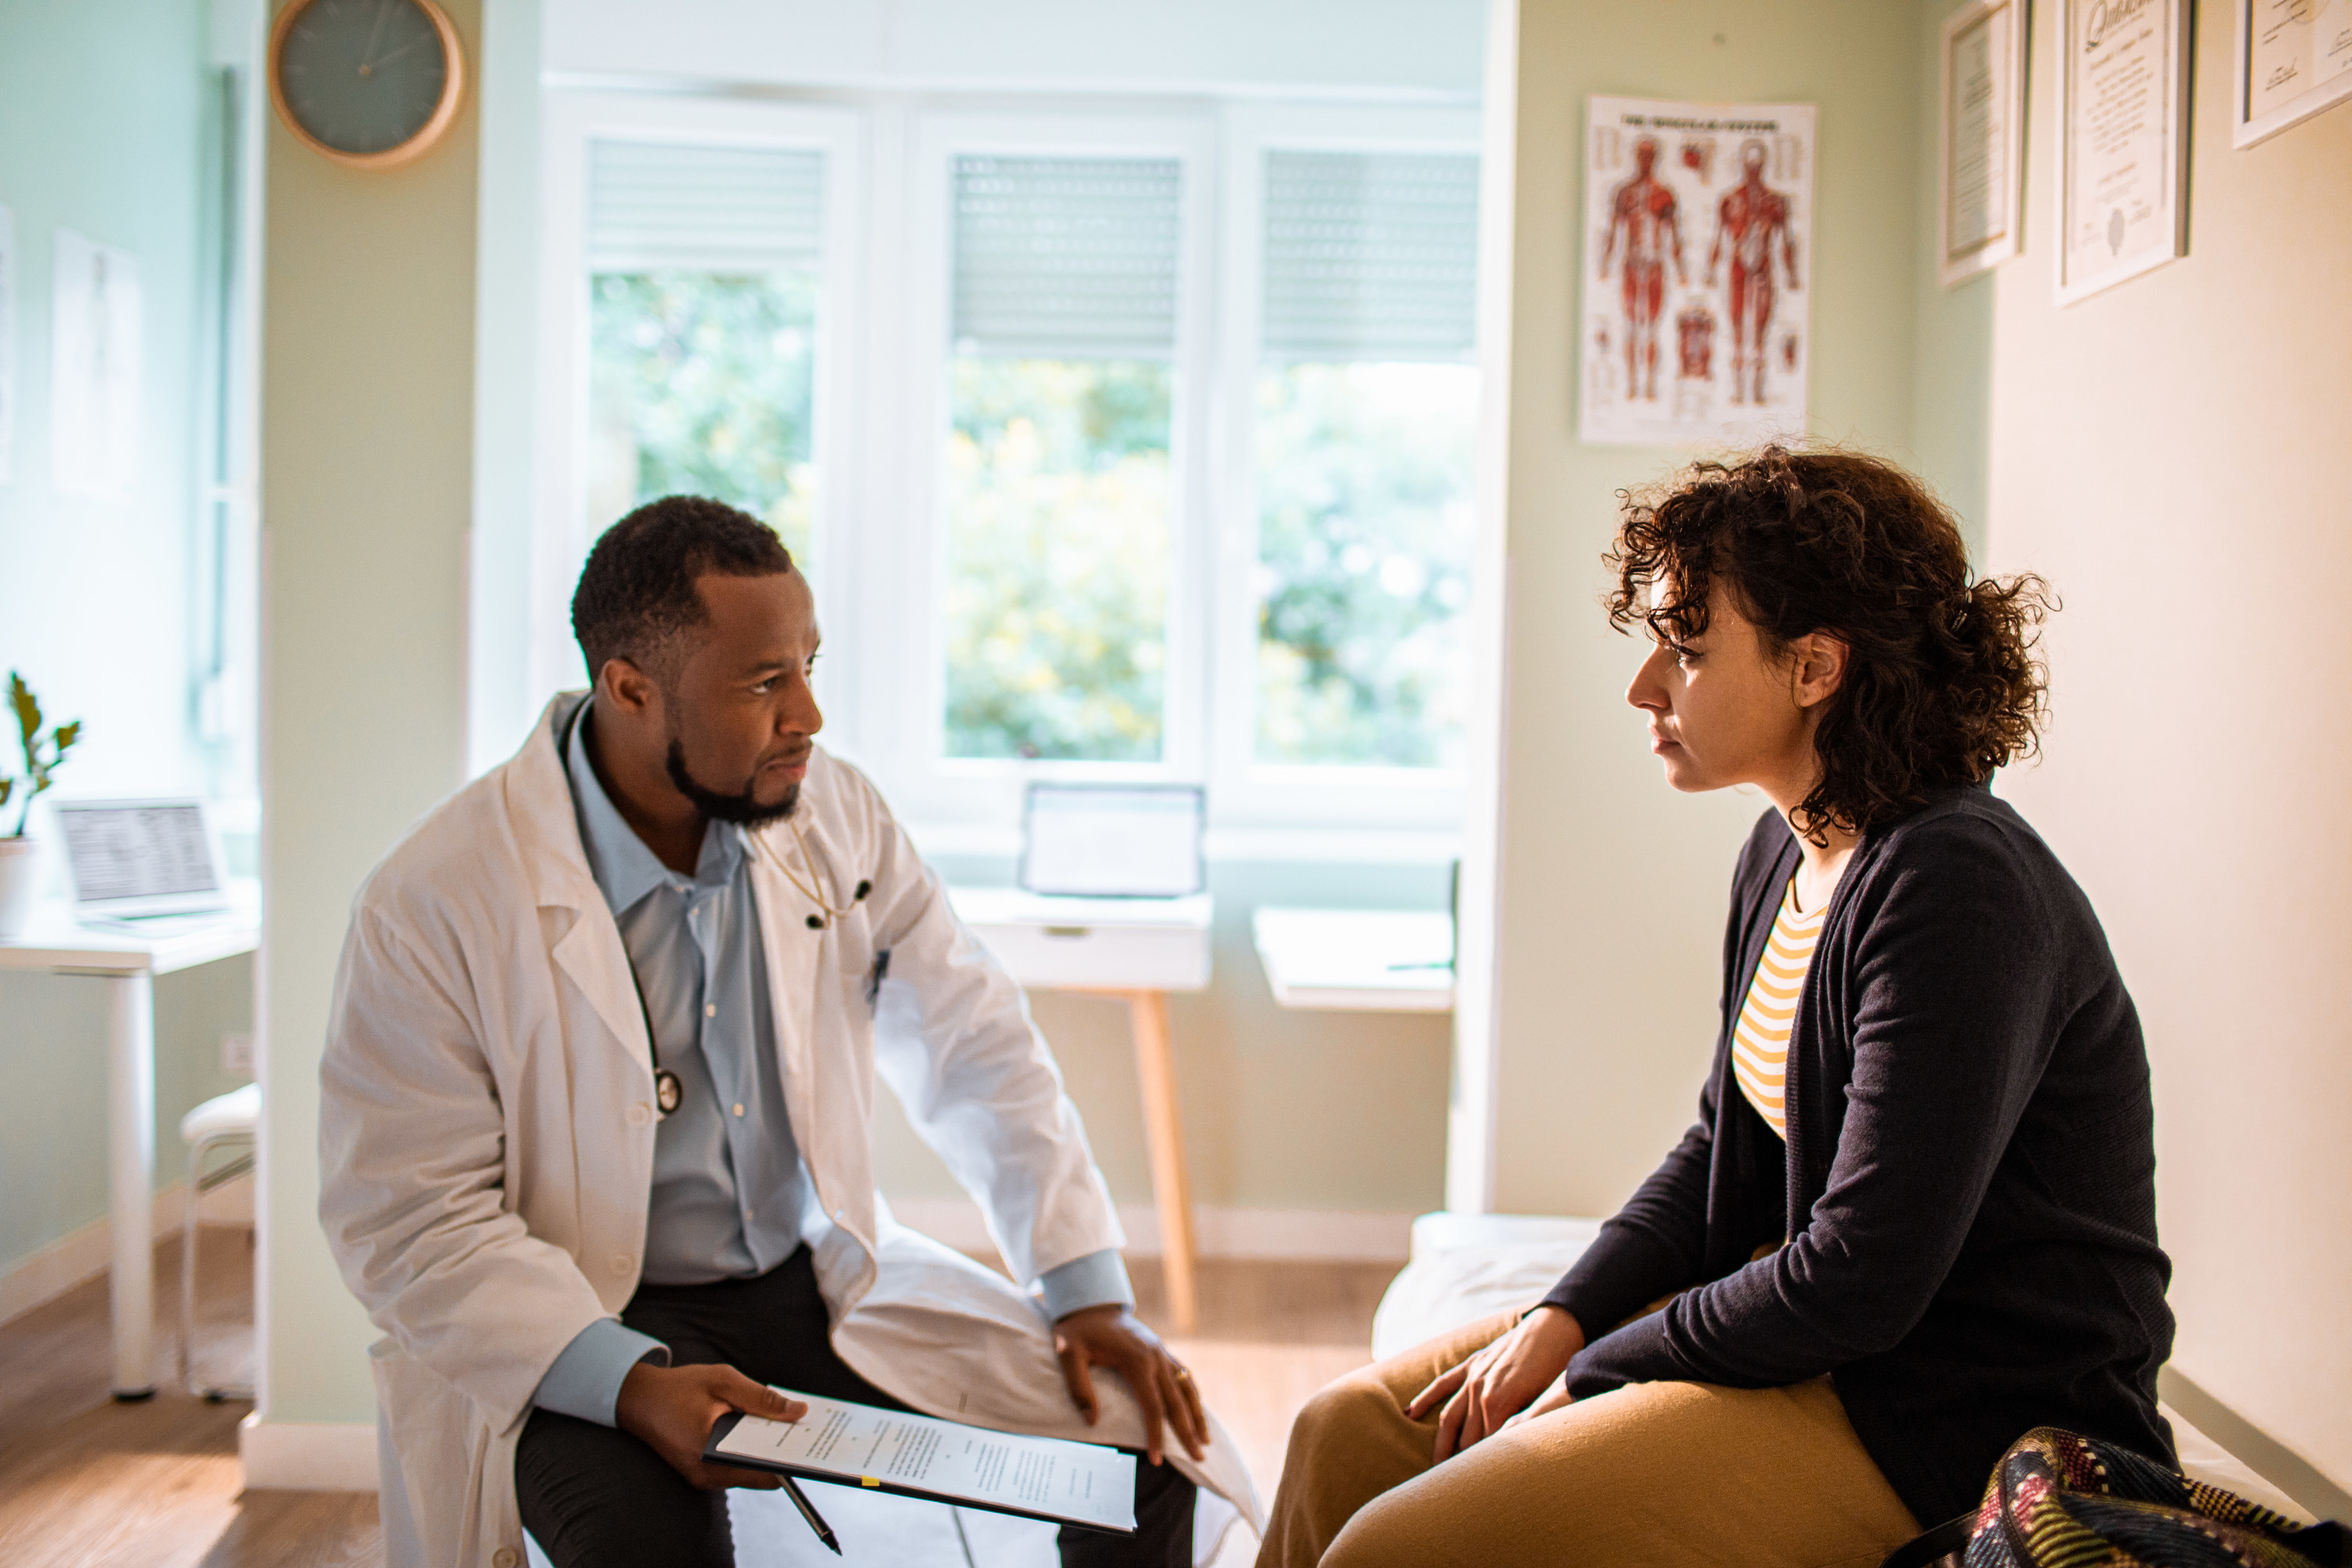 Young woman talking to her doctor during an appointment